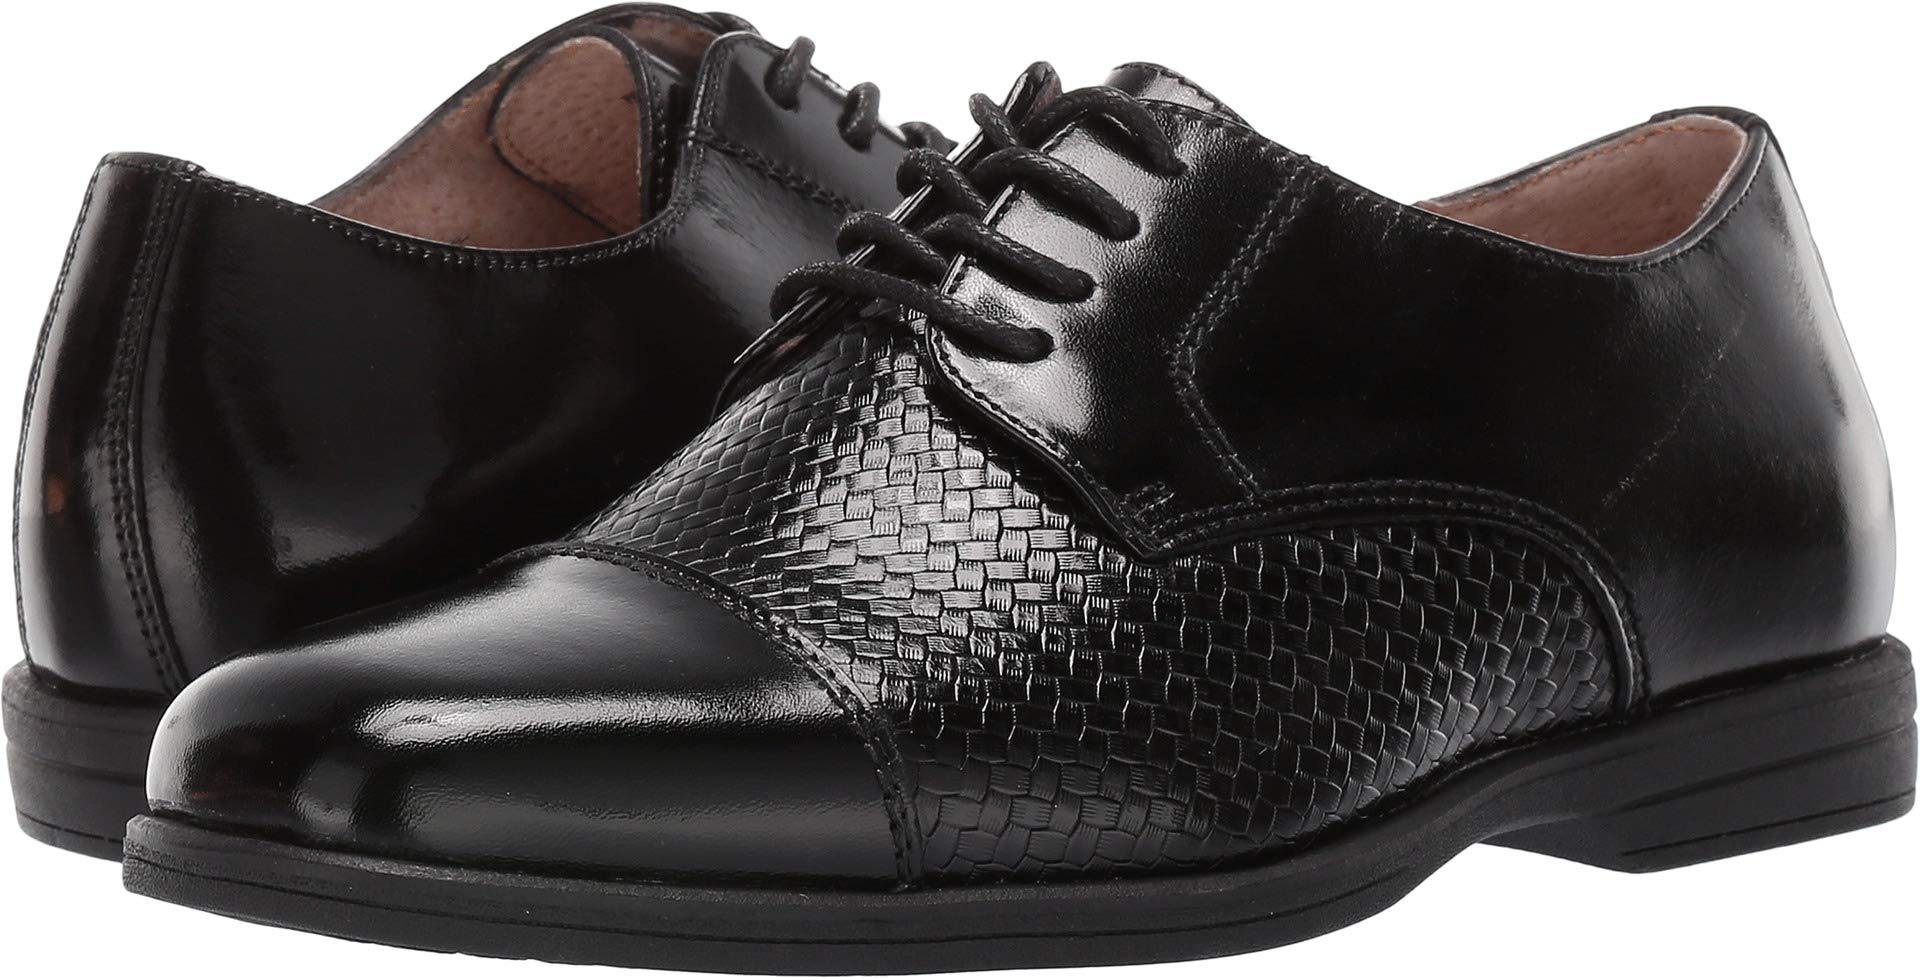 Florsheim Kids Boys' Reveal Cap Toe Oxford II, Black, 1 Medium Little Kid by Florsheim